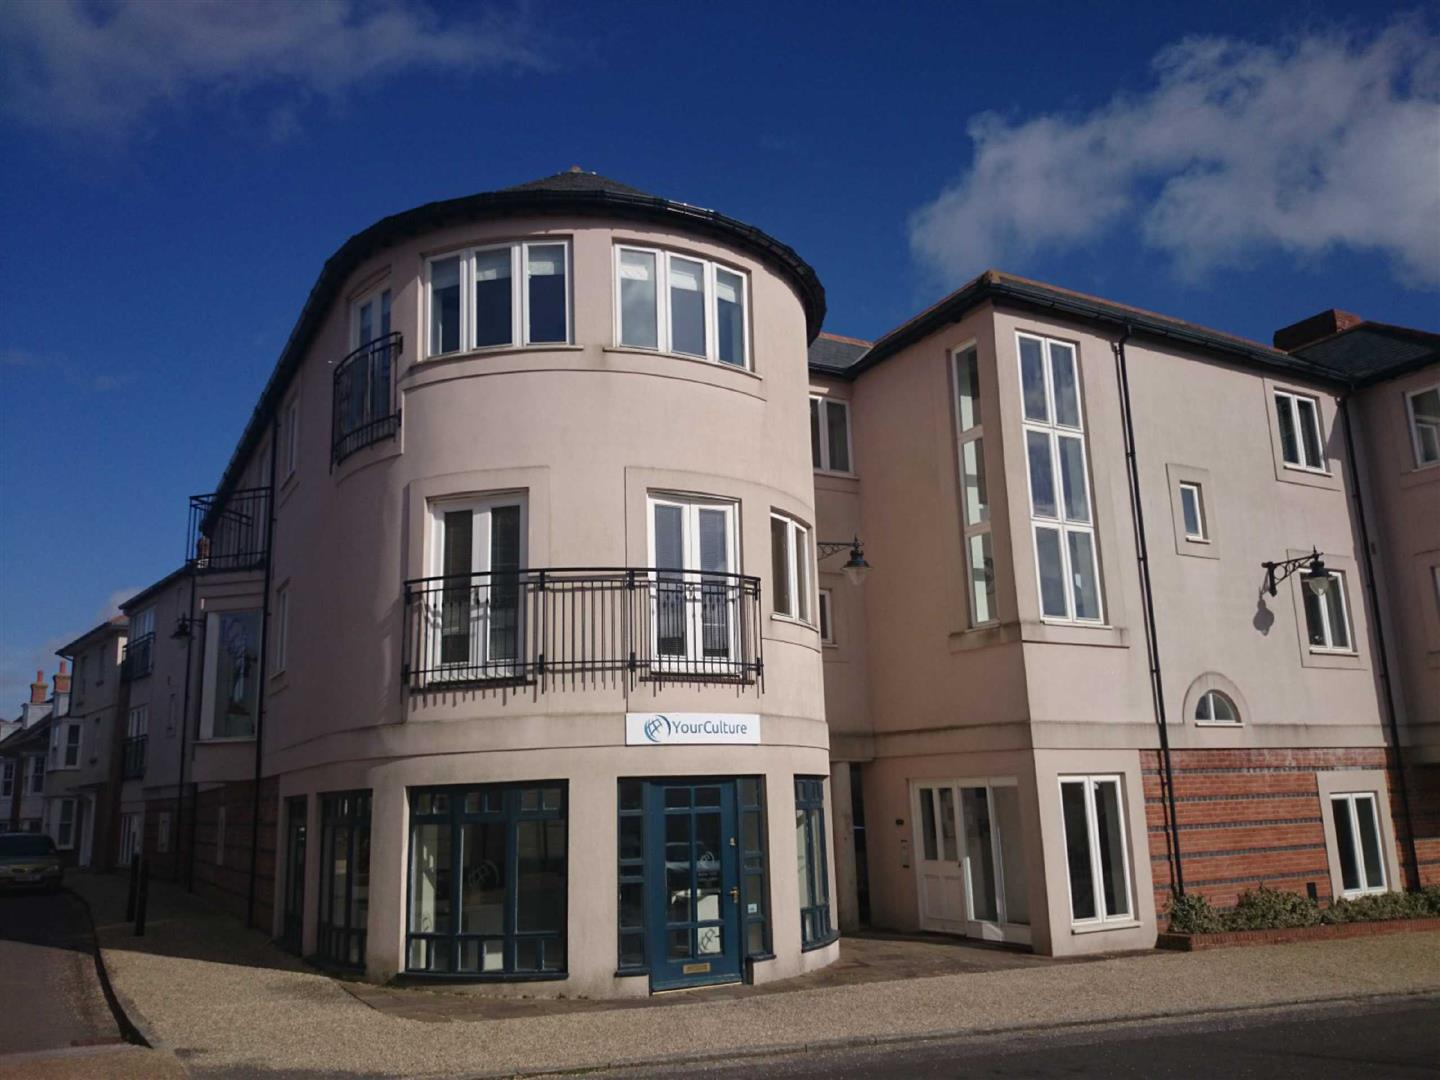 Tyberton court poundbury dorchester d dt1 2 bed apartment dt1 3as 800 to rent for 2 bedroom apartments in dorchester ma